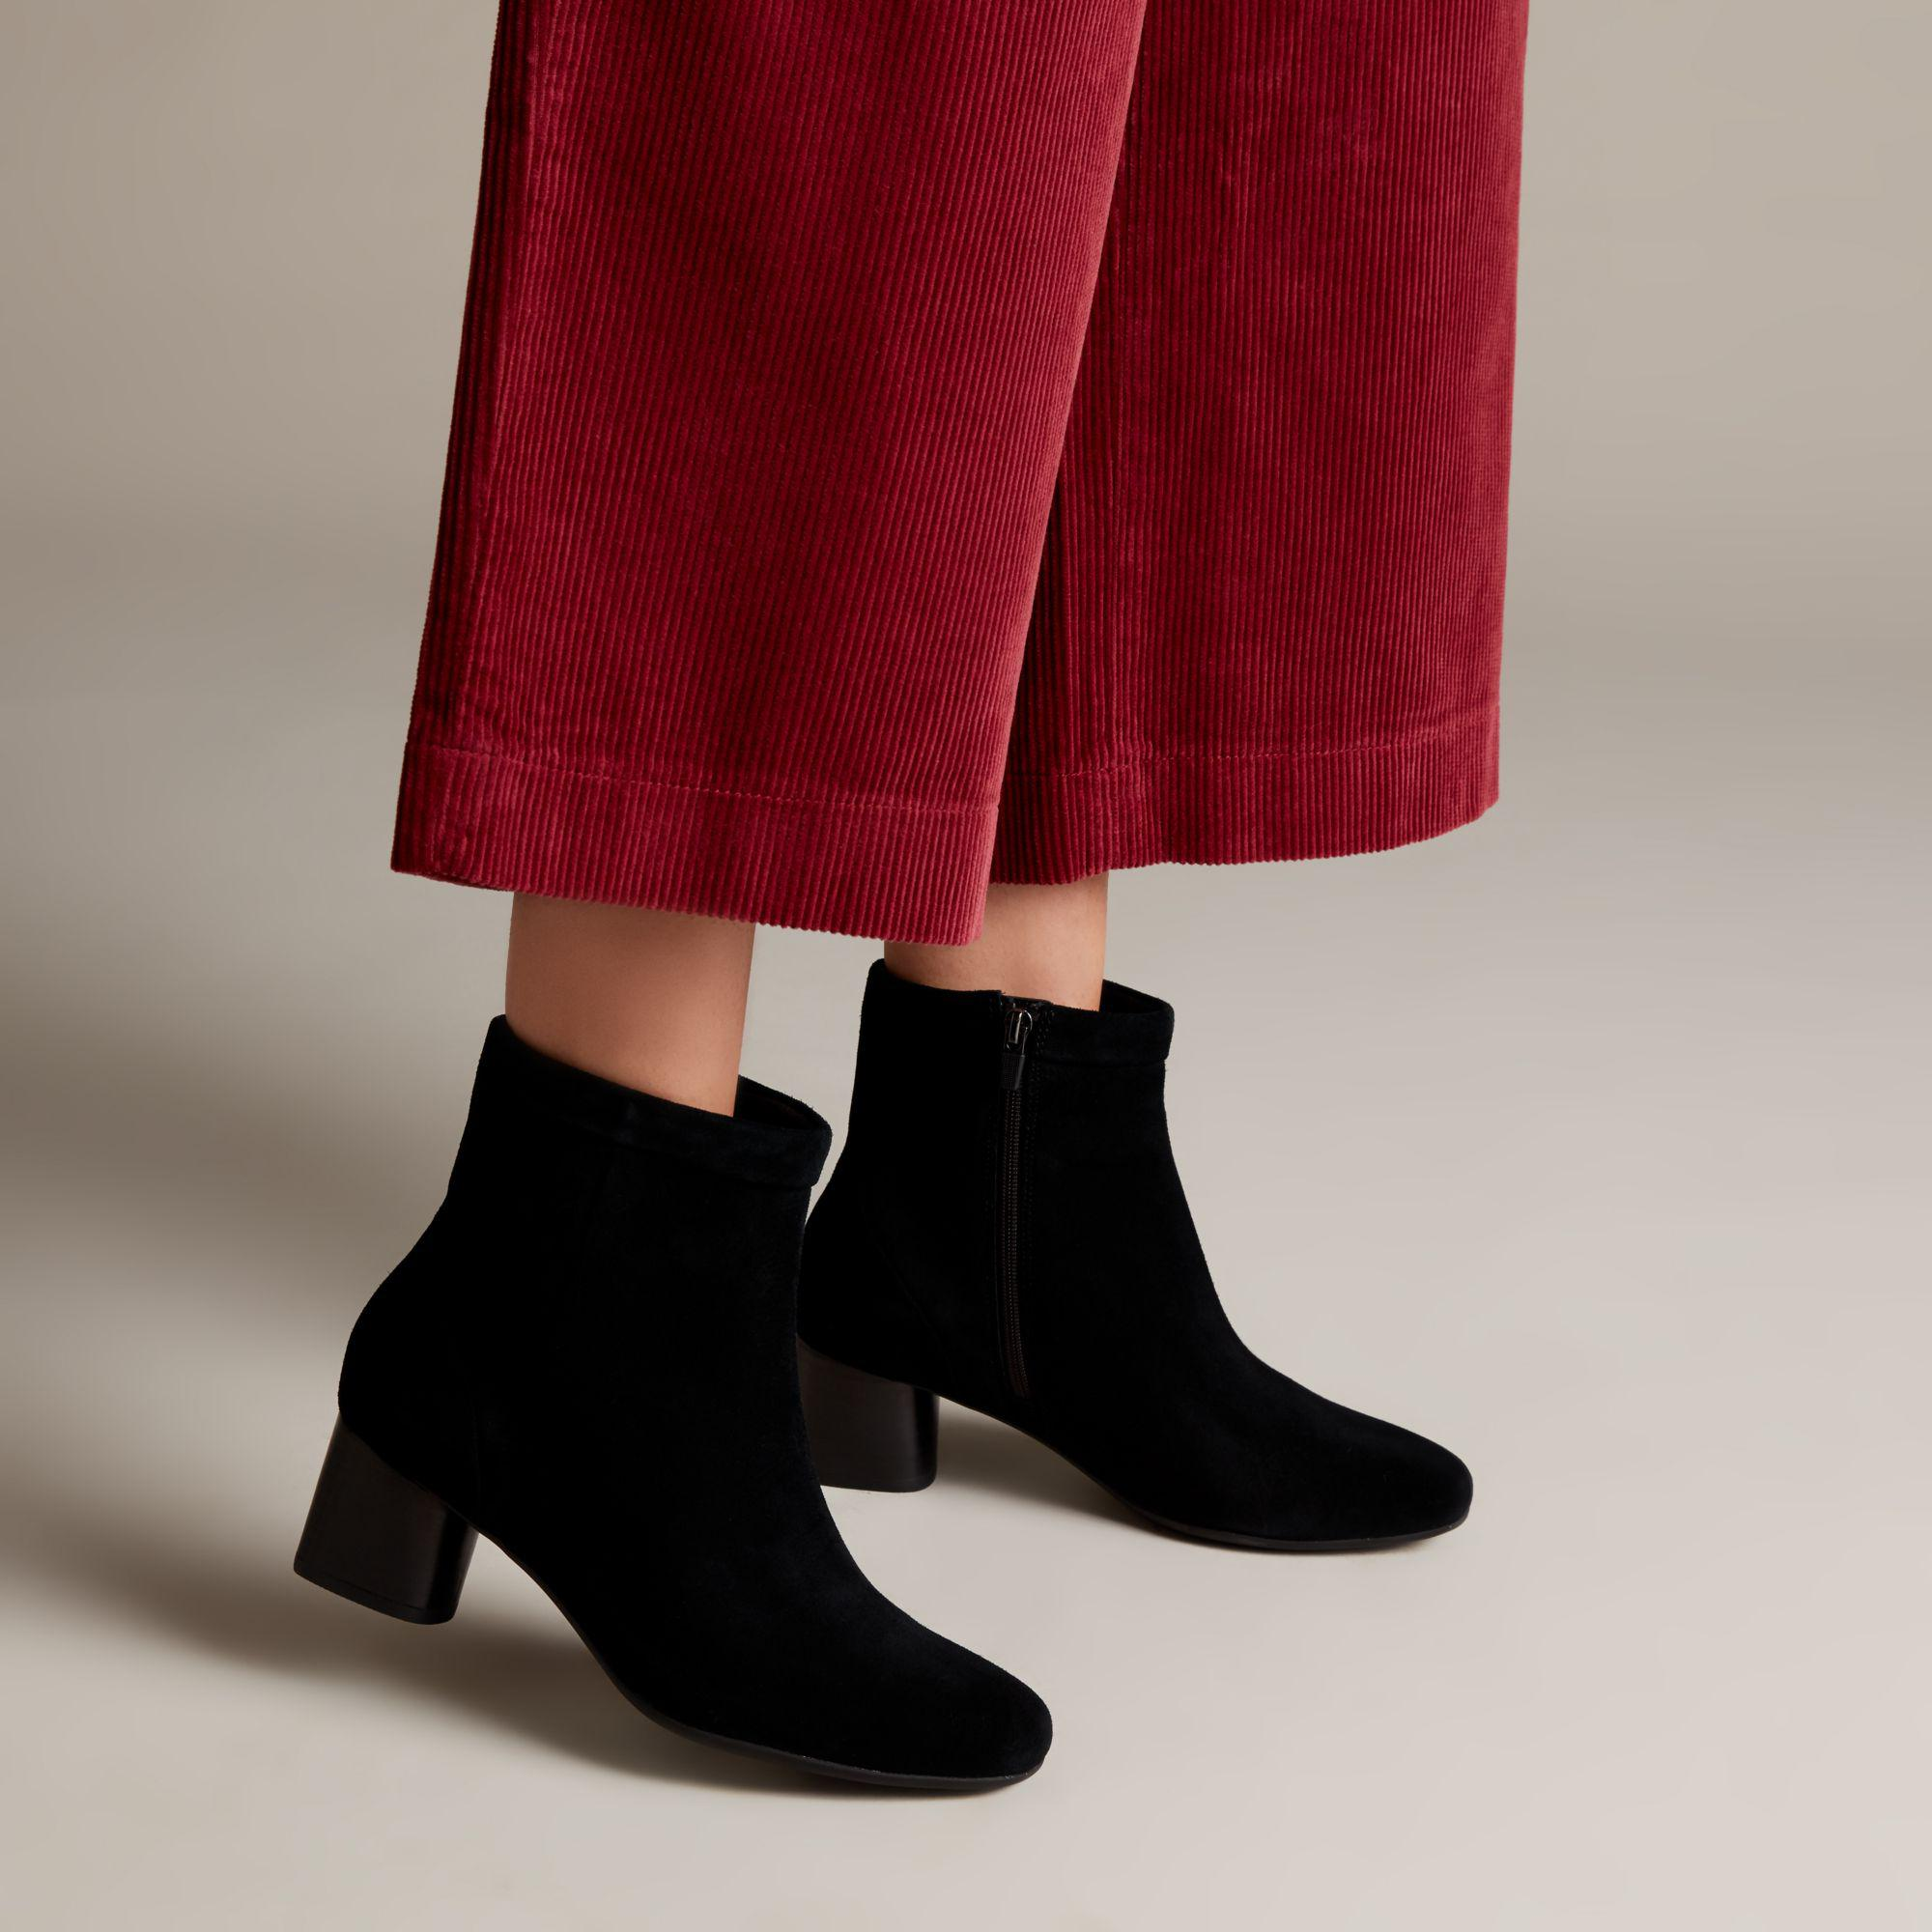 clarks un cosmo up off 61% - www